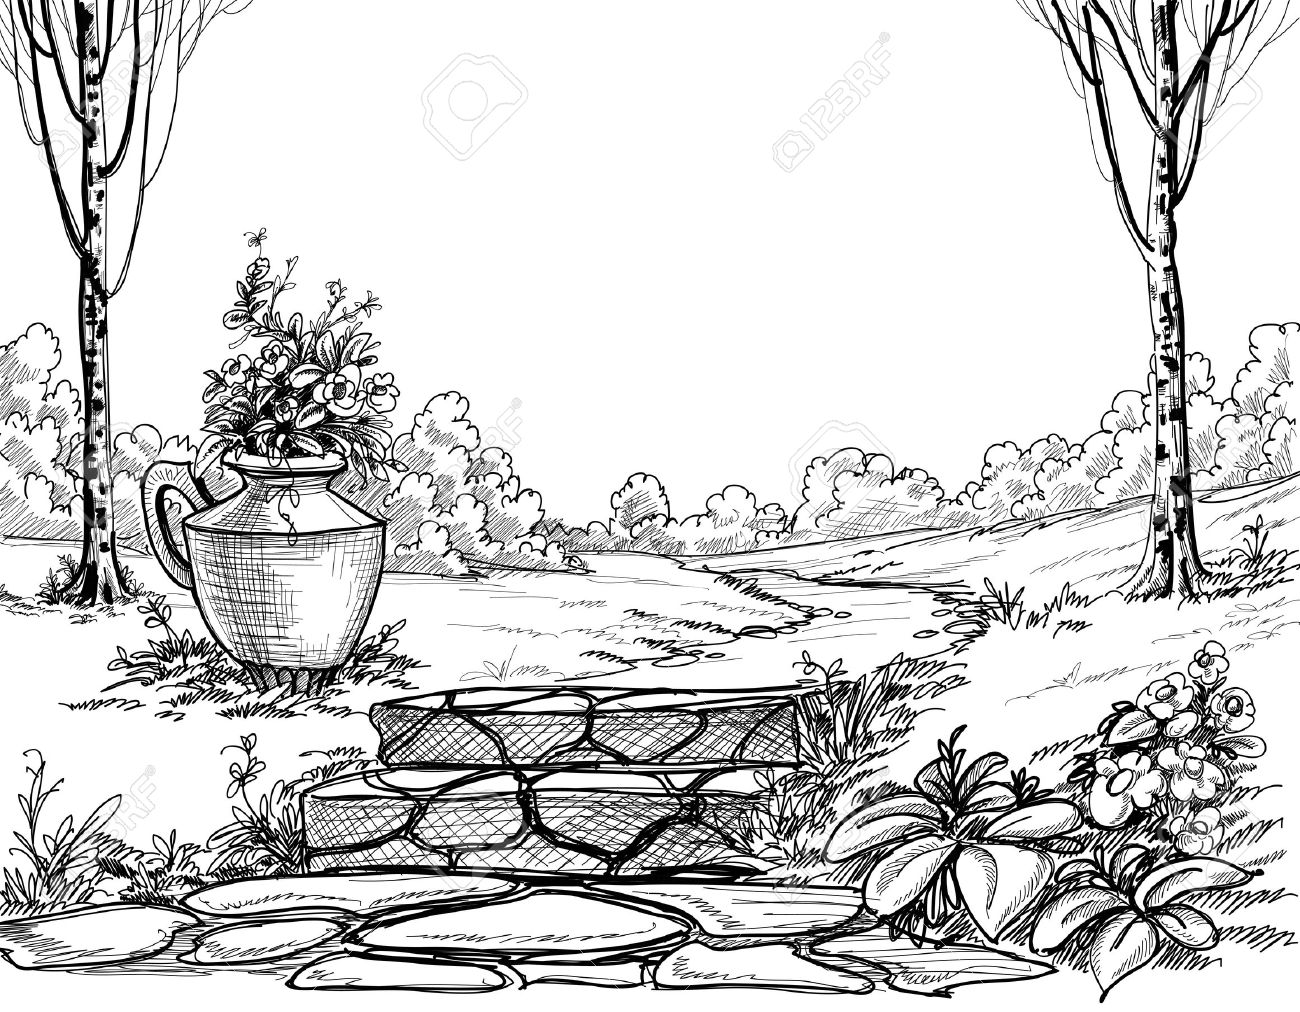 Stone Stairs In The Park Pencil Drawing Royalty Free Cliparts.